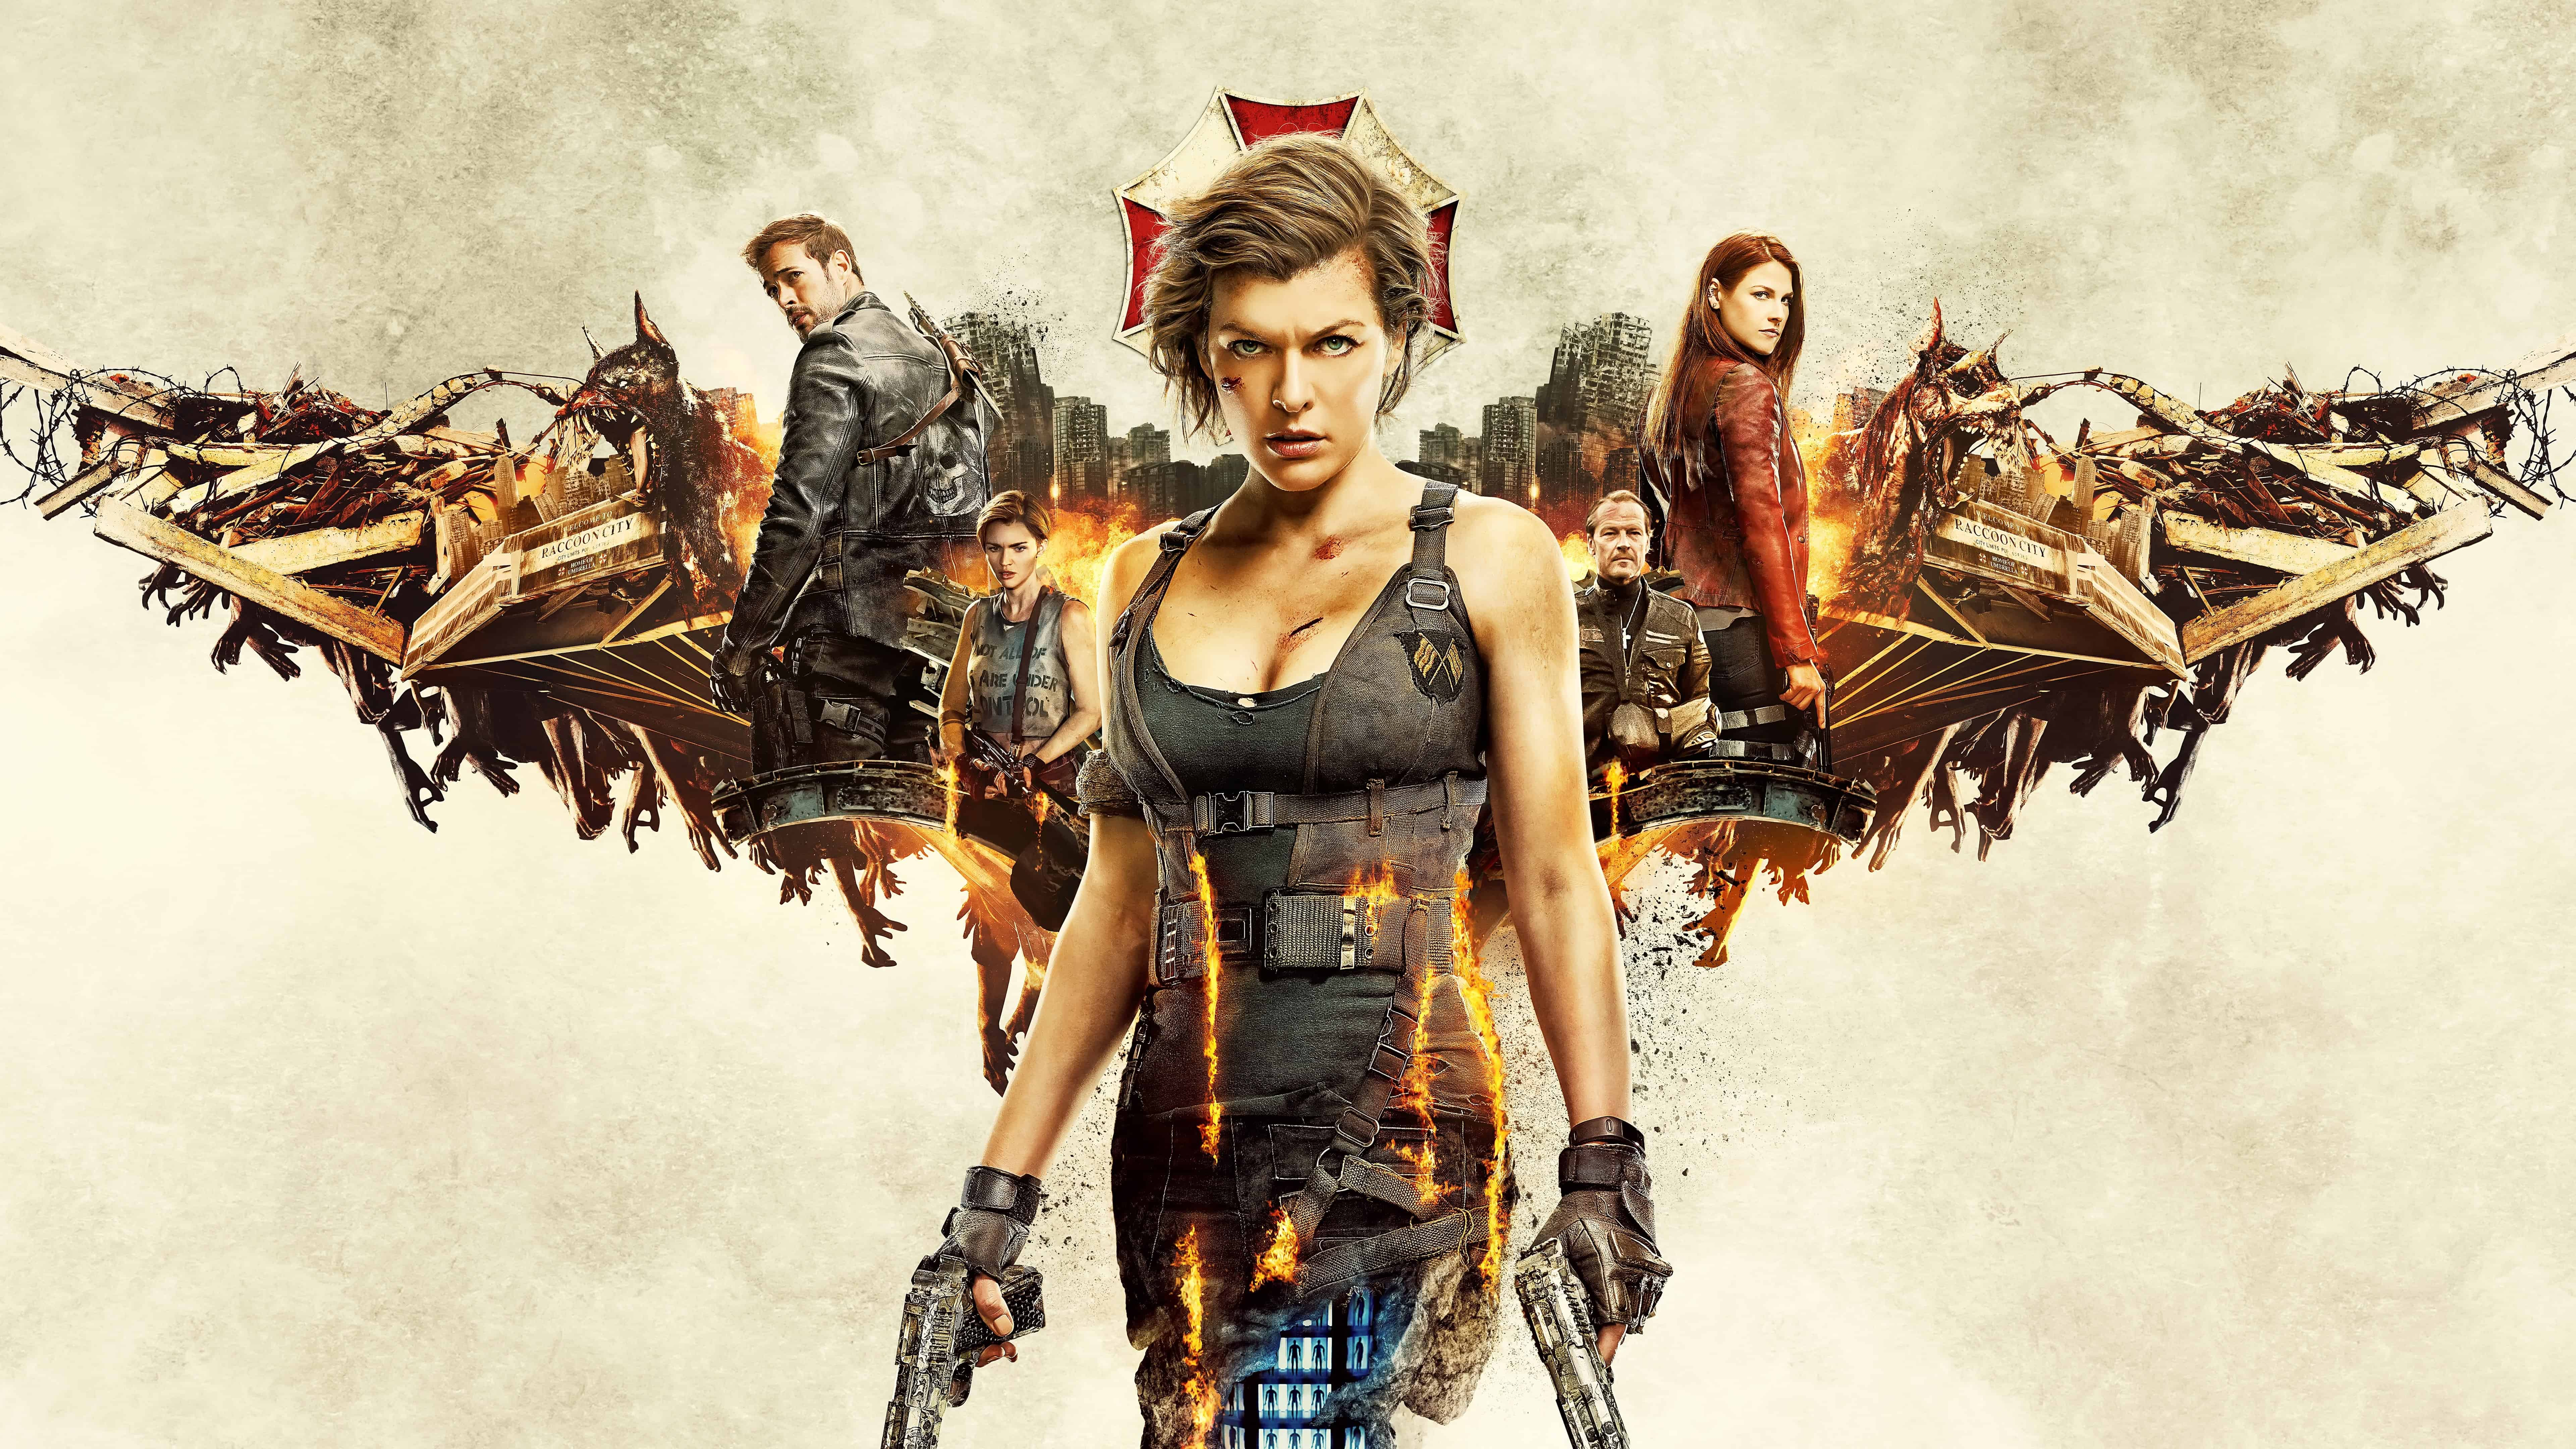 Resident evil the final chapter uhd 8k wallpaper pixelz - Resident evil final chapter 4k ...